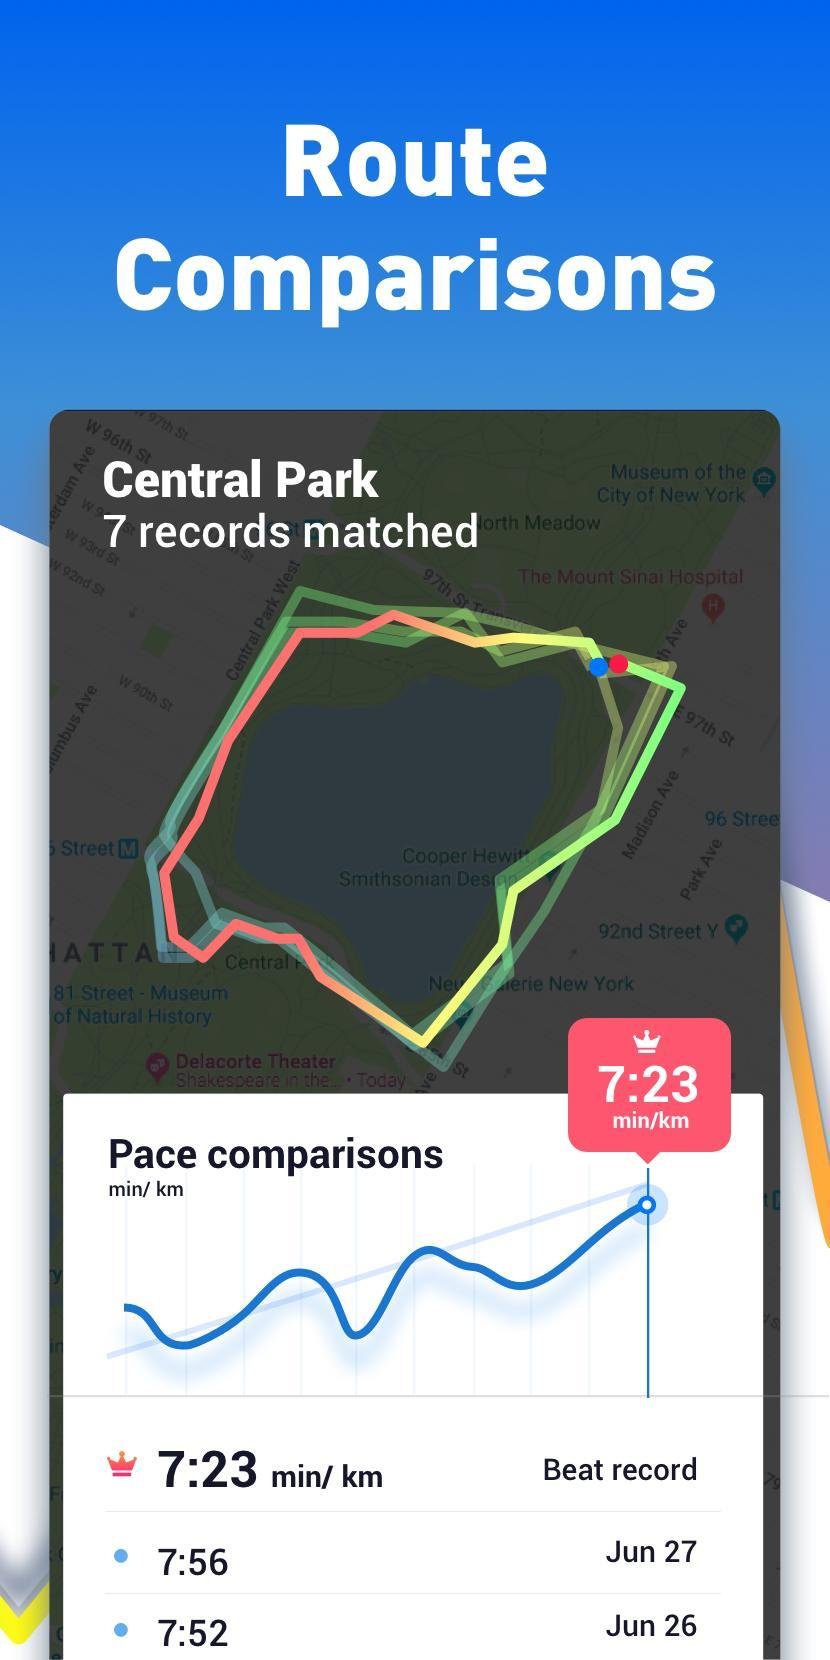 Running App - Run Tracker with GPS, Map My Running for ... on keeper app, spark people app, running app, map with legend scale title, alarm clock plus app, gym hero app, cyclemeter heart app, mio heart monitor app, gain fitness app, light magnifier app, star chart app,